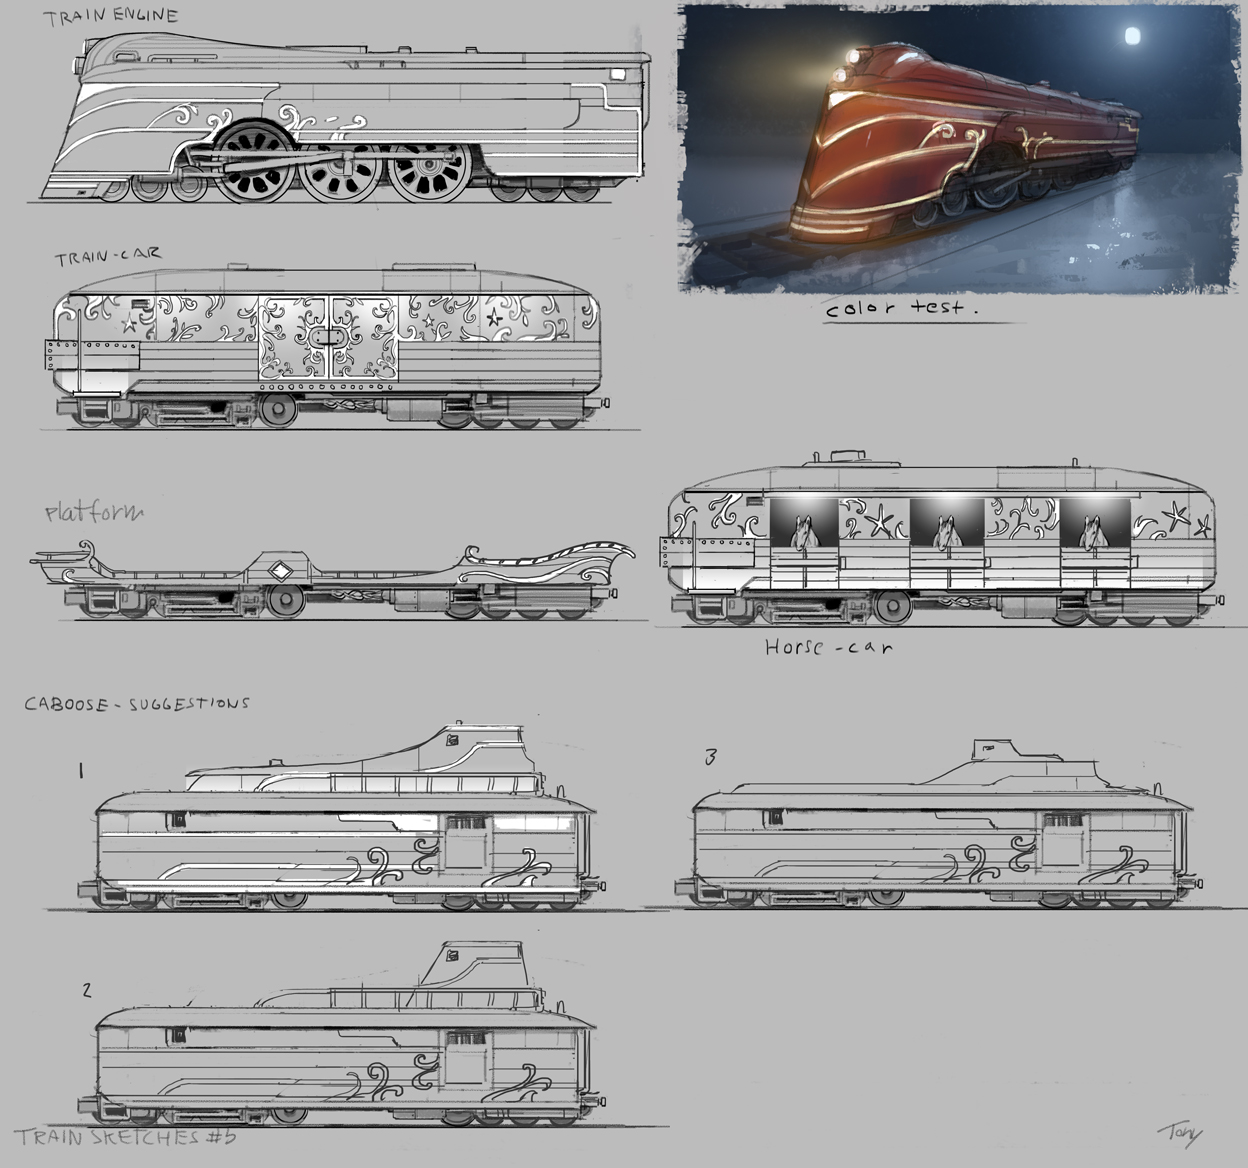 Here is what we finally settled for, together with some caboose and empty platform sections.